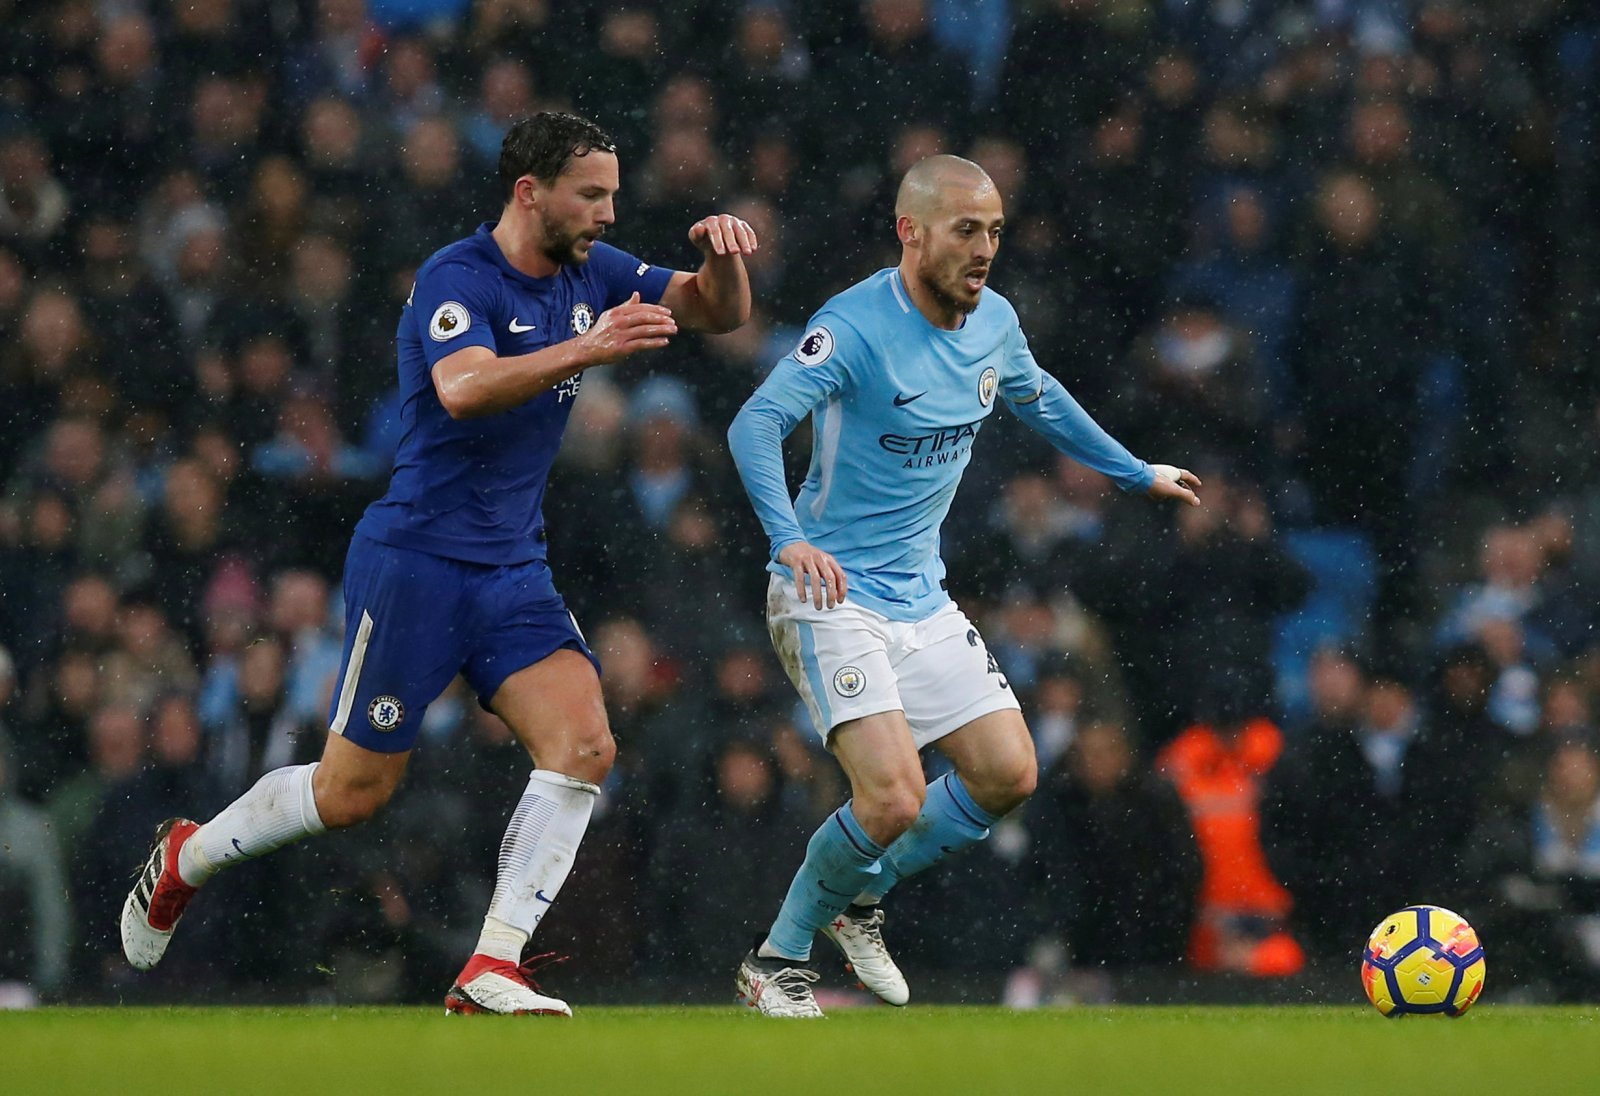 Signing Drinkwater would add quality to Everton's lacklustre midfield